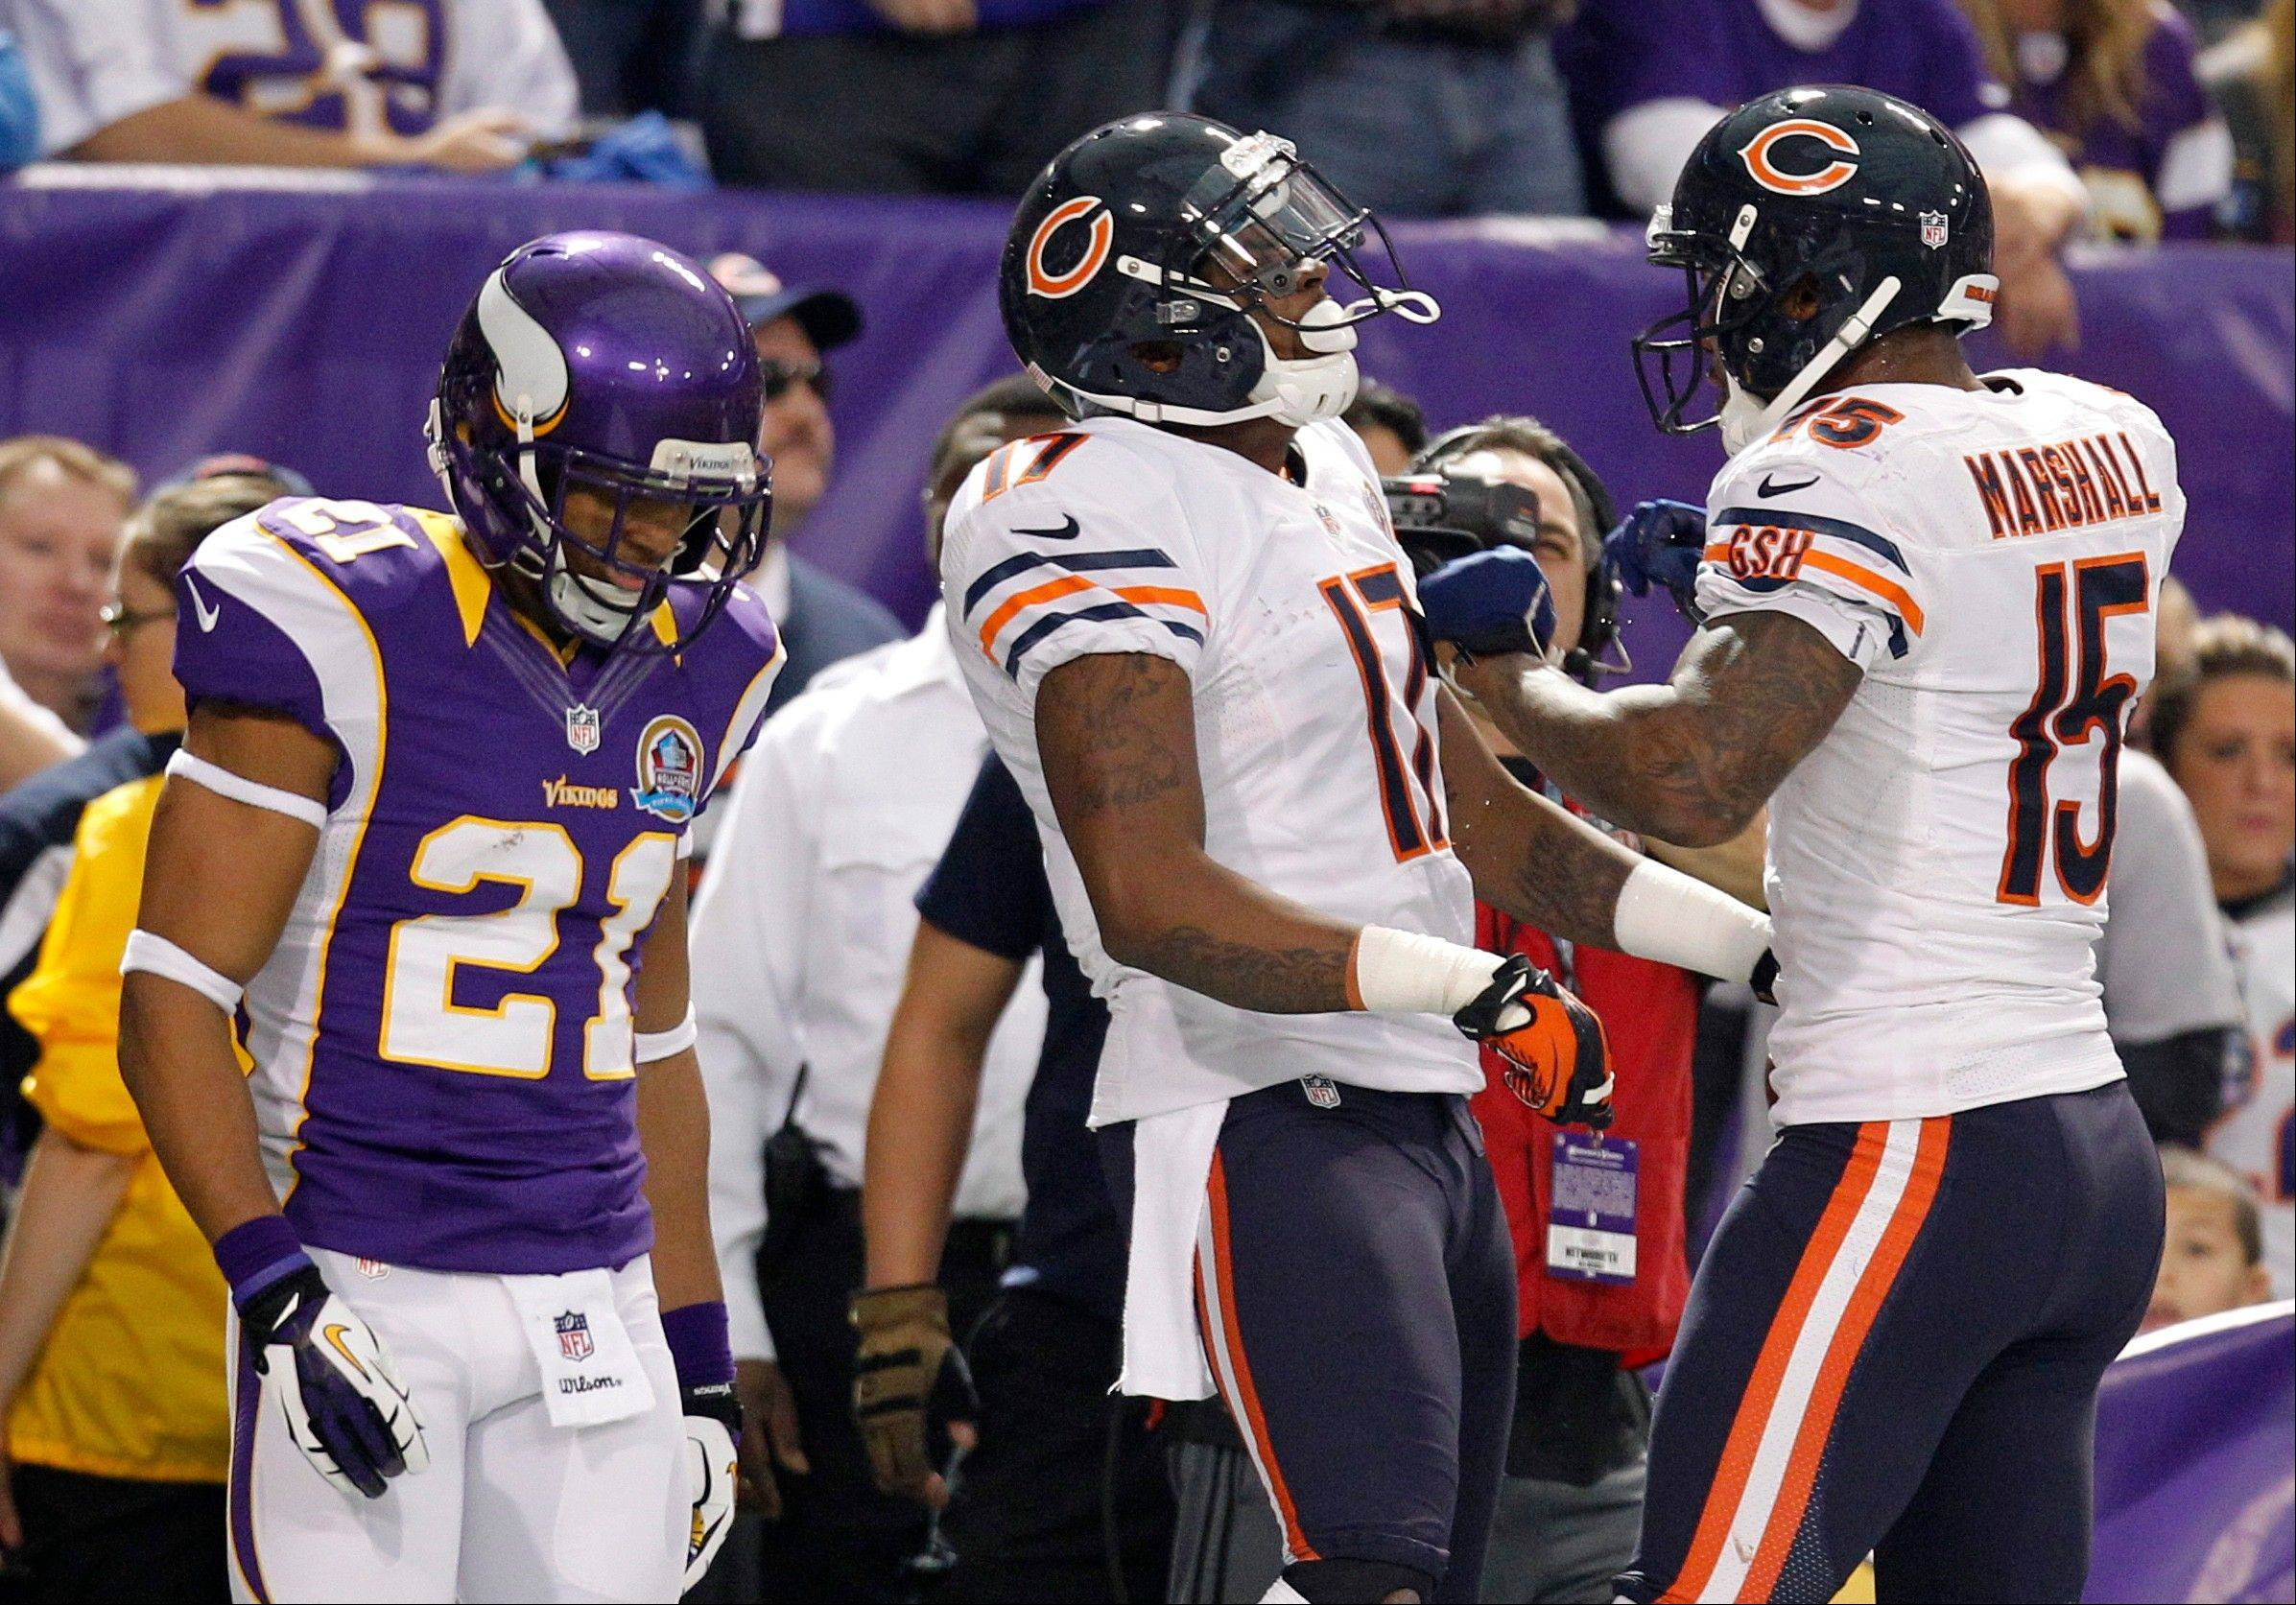 Chicago Bears wide receiver Alshon Jeffery, center, celebrates with teammate Brandon Marshall, right, in front of Minnesota Vikings cornerback Josh Robinson after catching a 23-yard touchdown pass during the first half.